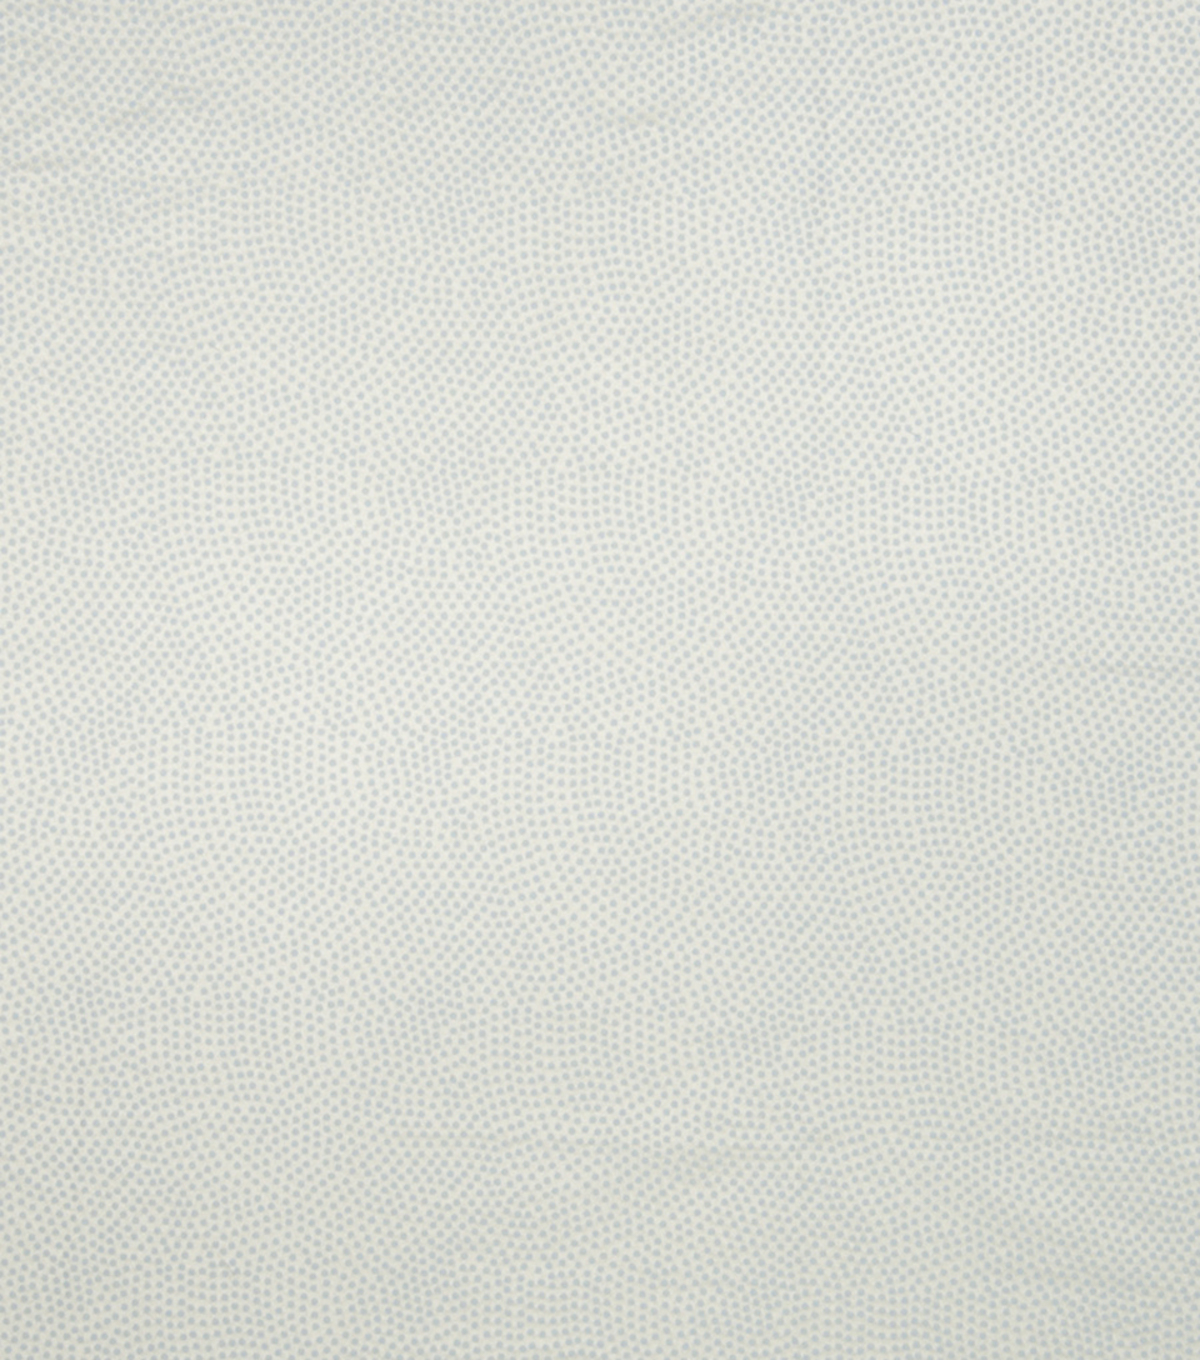 Home Decor 8\u0022x8\u0022 Fabric Swatch-Eaton Square Buffet Duck Egg